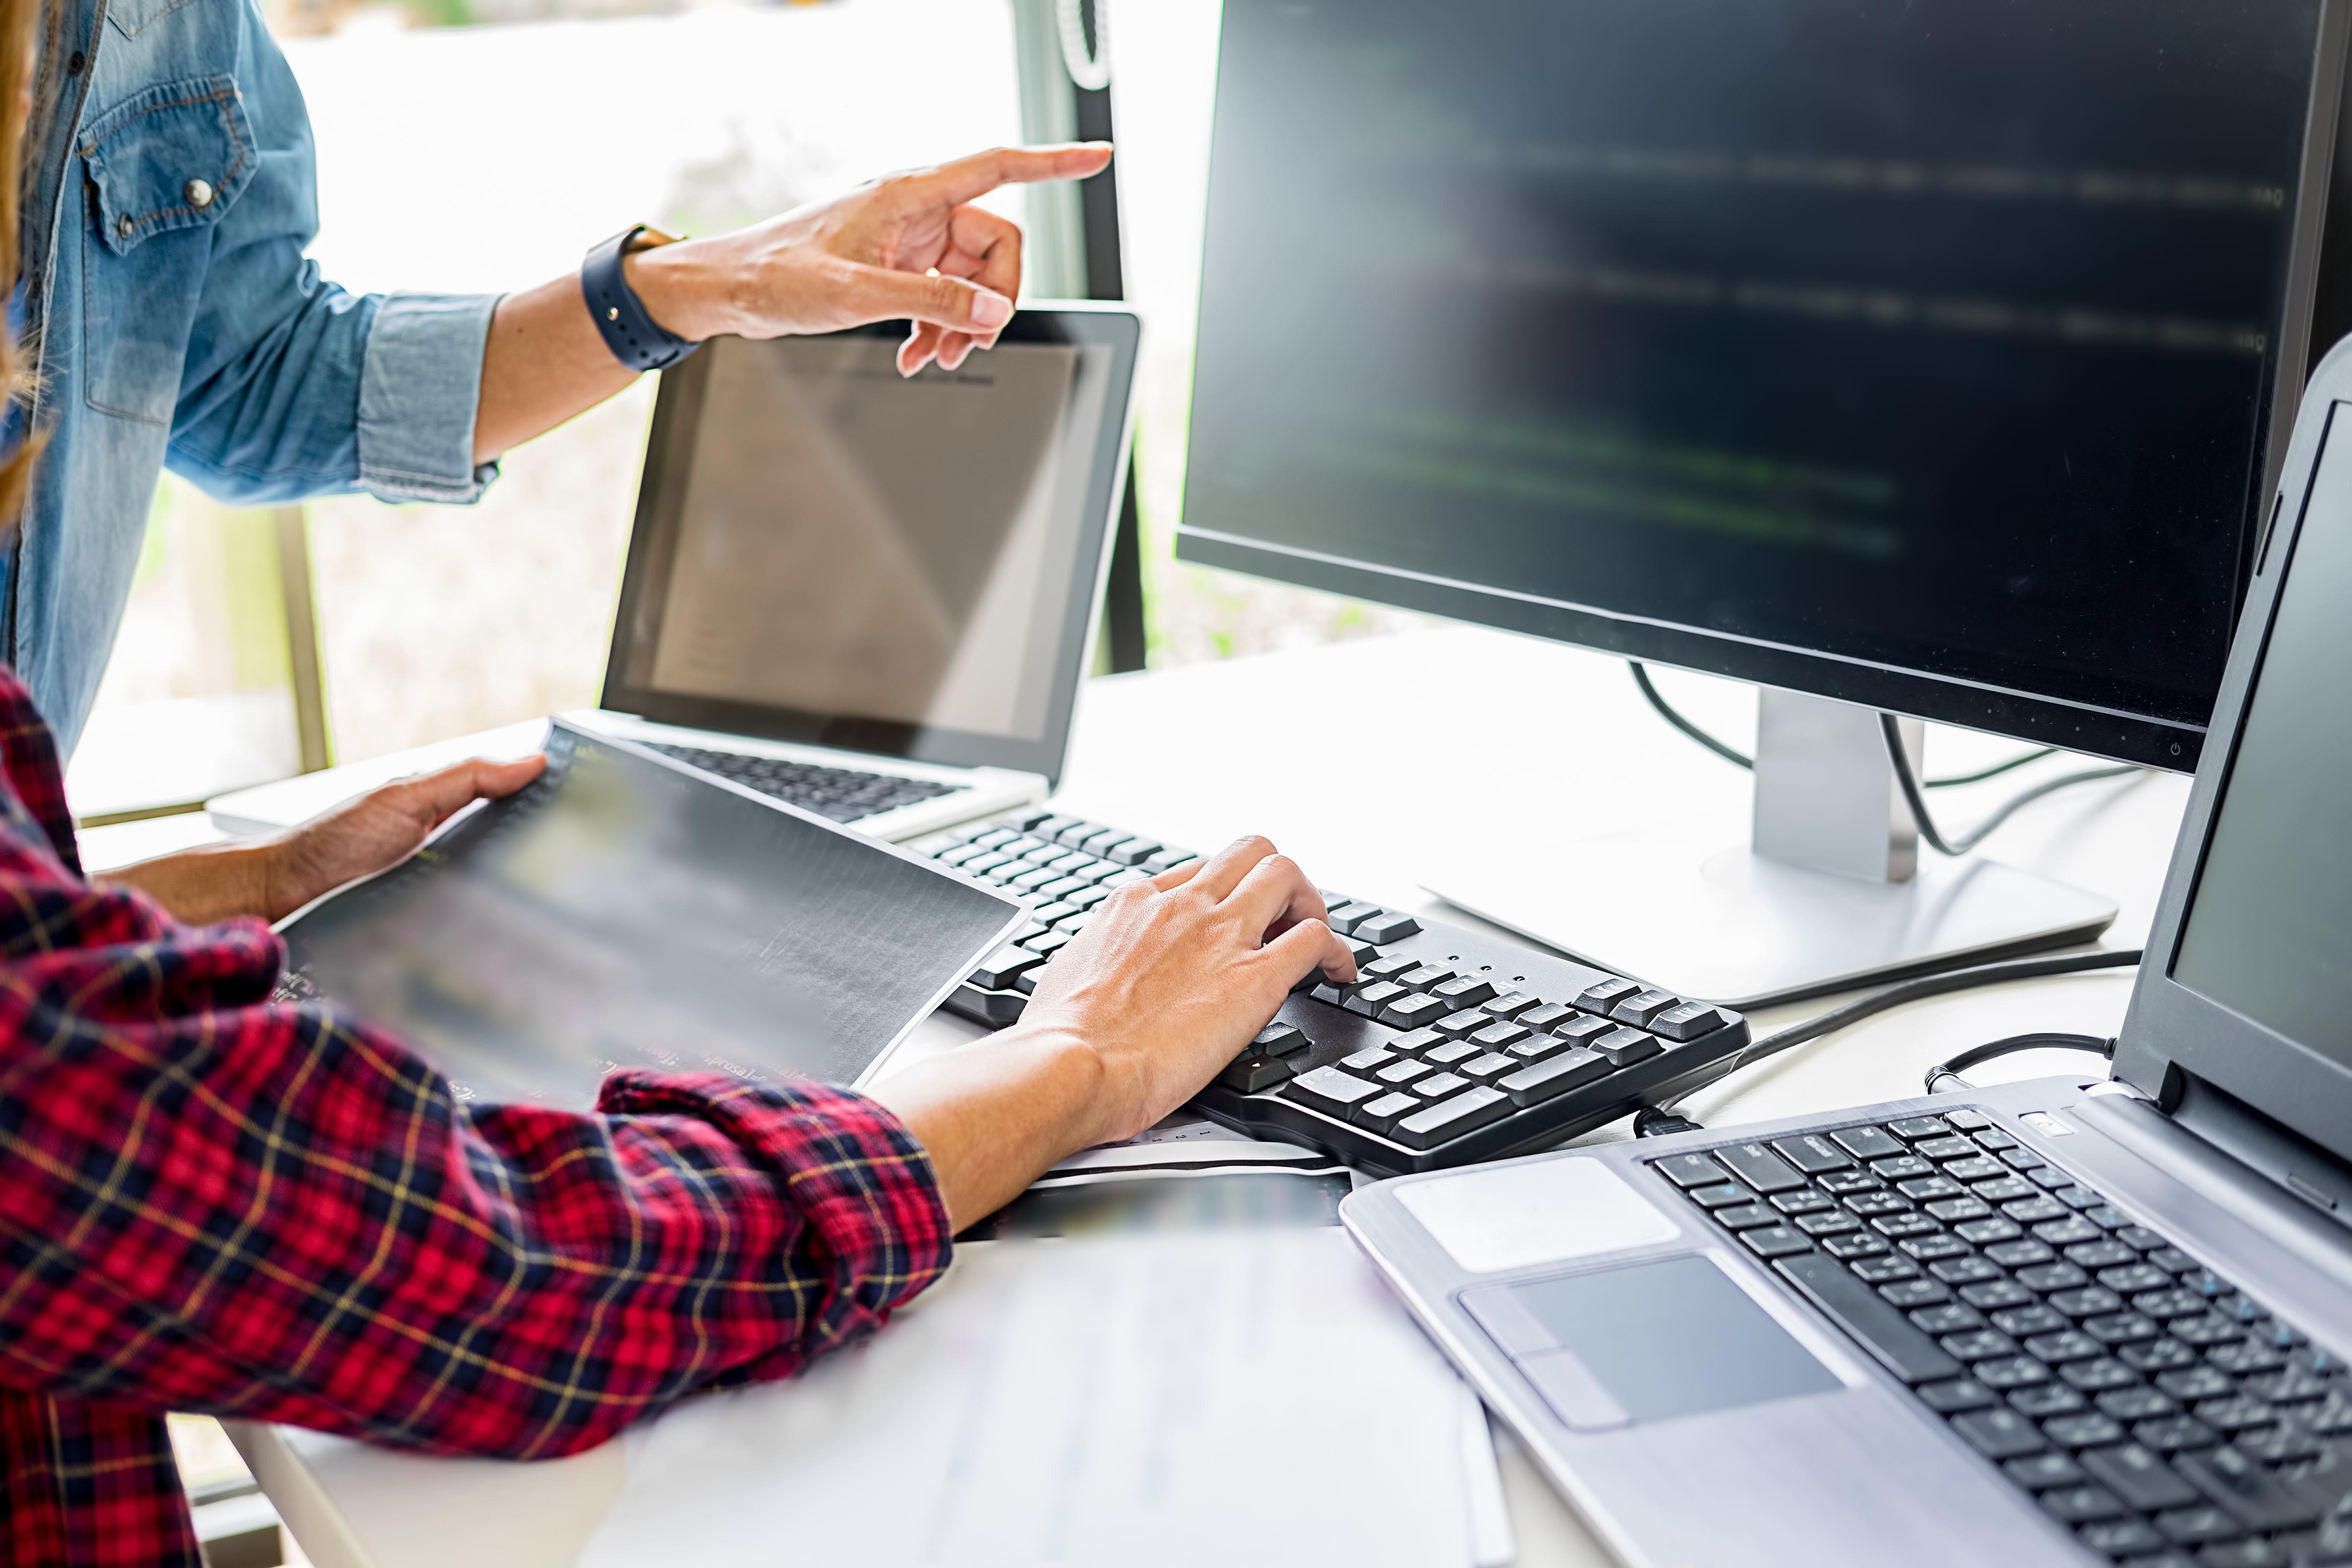 How to Connect Two Monitors to a Laptop | Small Business - Chron.com